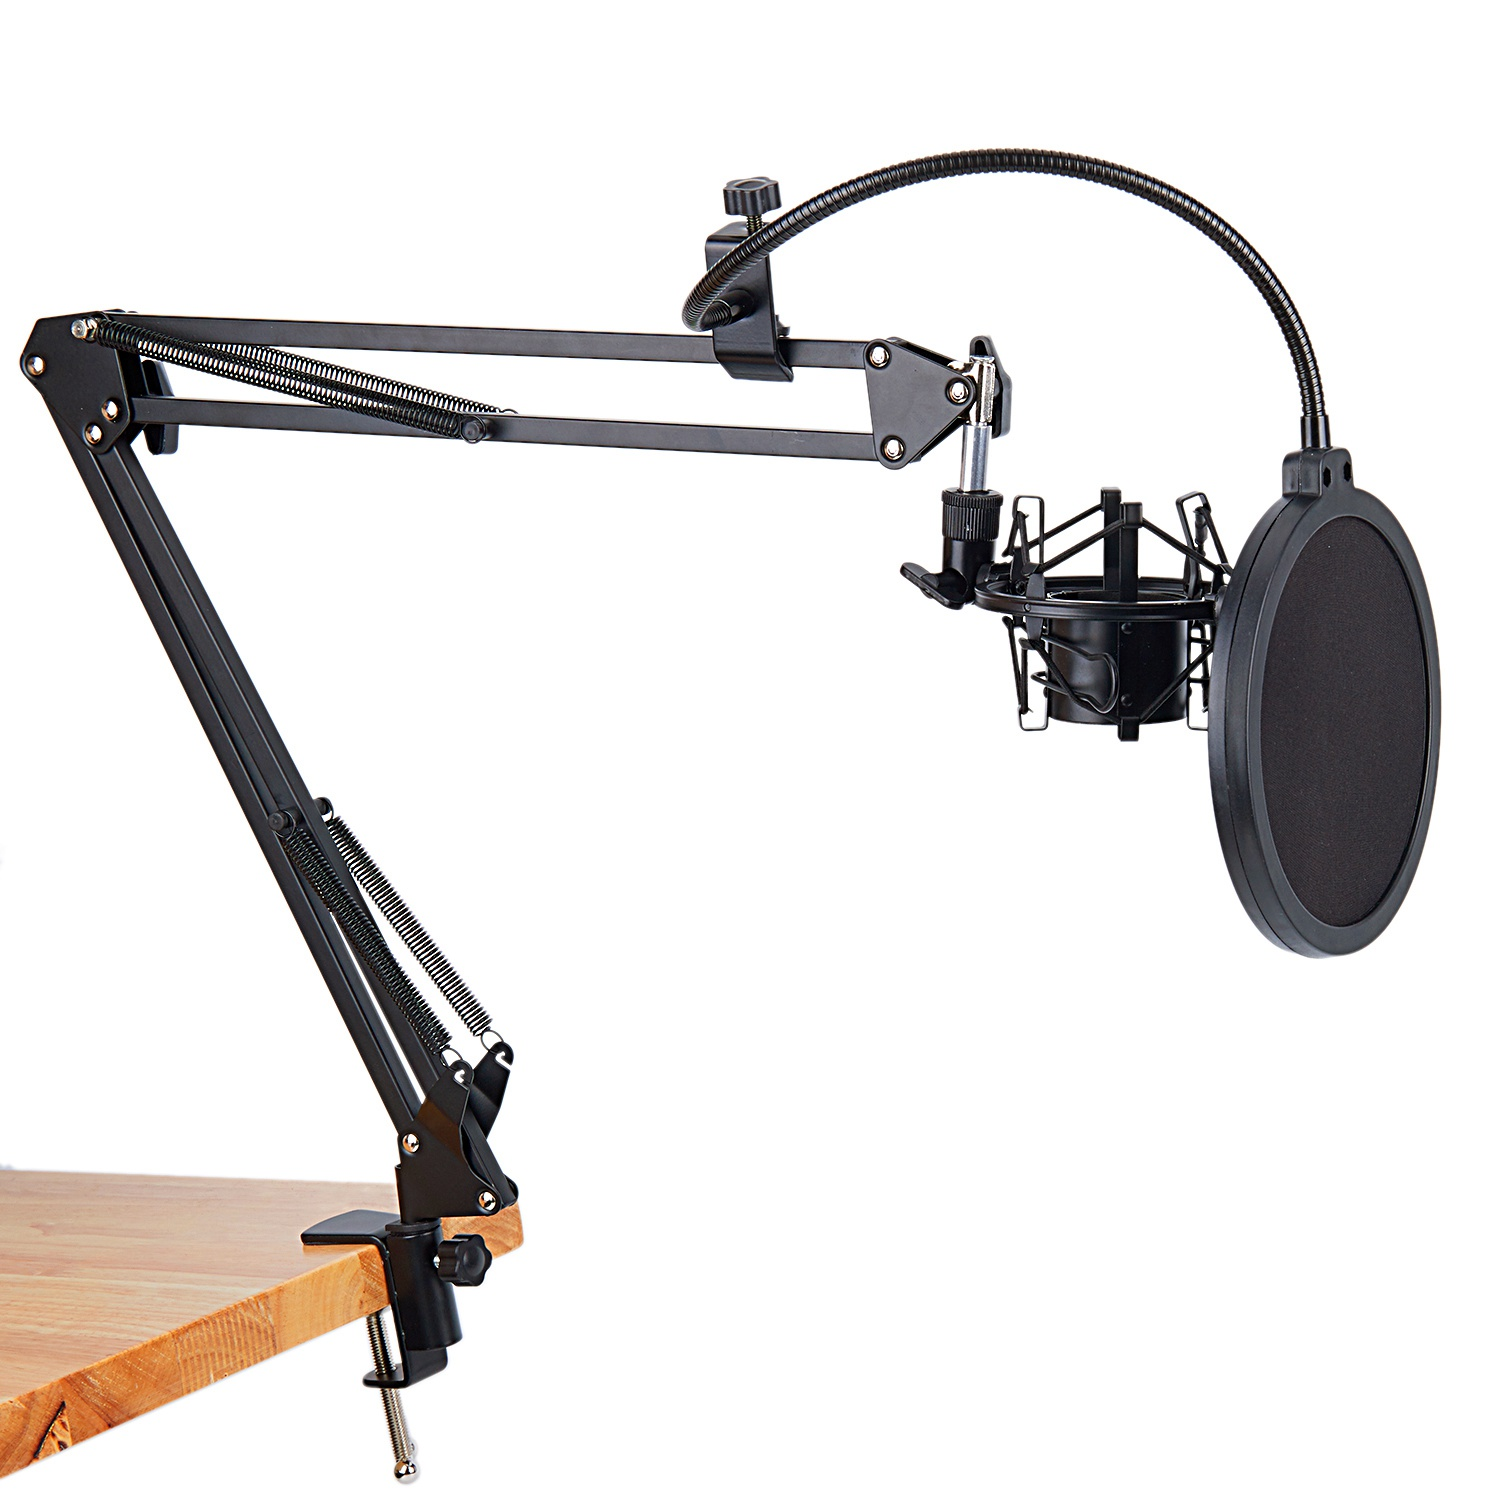 NB 35 Microphone Scissor Arm Stand and Table Mounting Clamp NW Filter Windscreen Shield Metal Mount